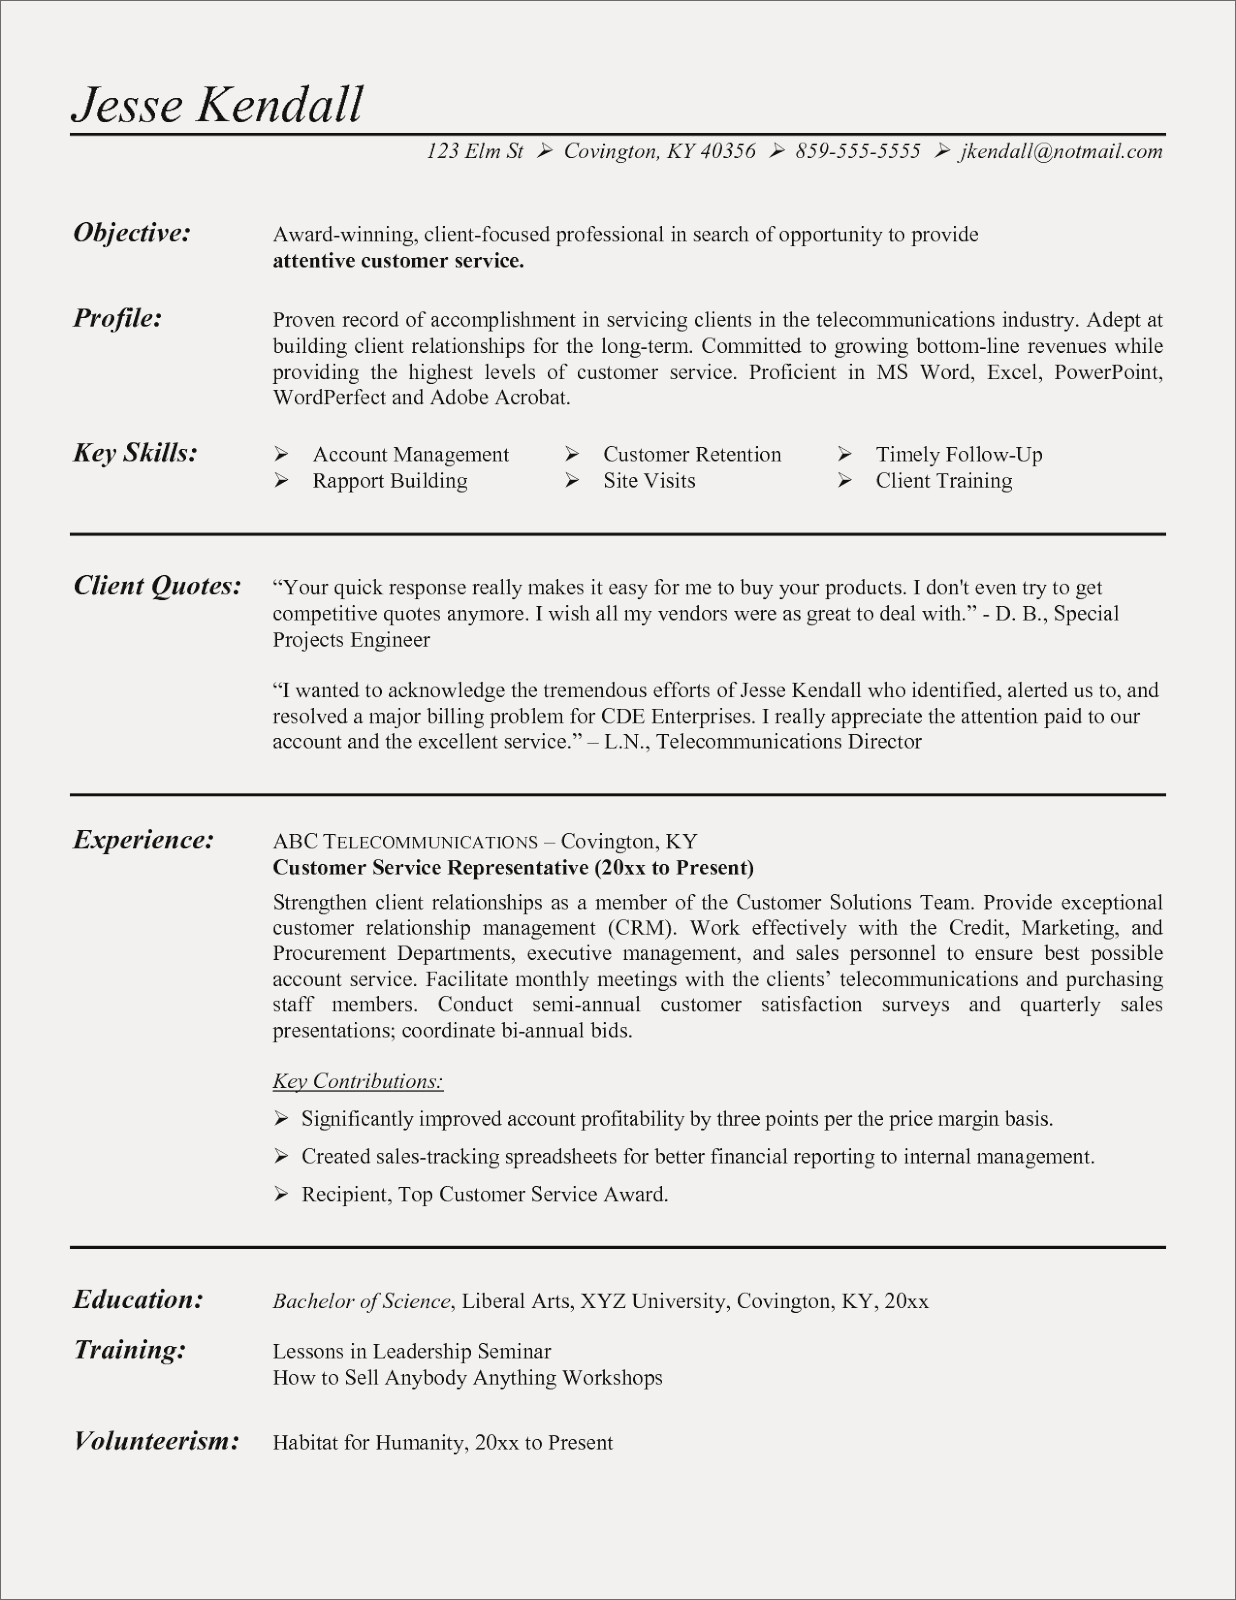 Marketing Manager Resume Template - Account Manager Resume Save Beautiful Grapher Resume Sample